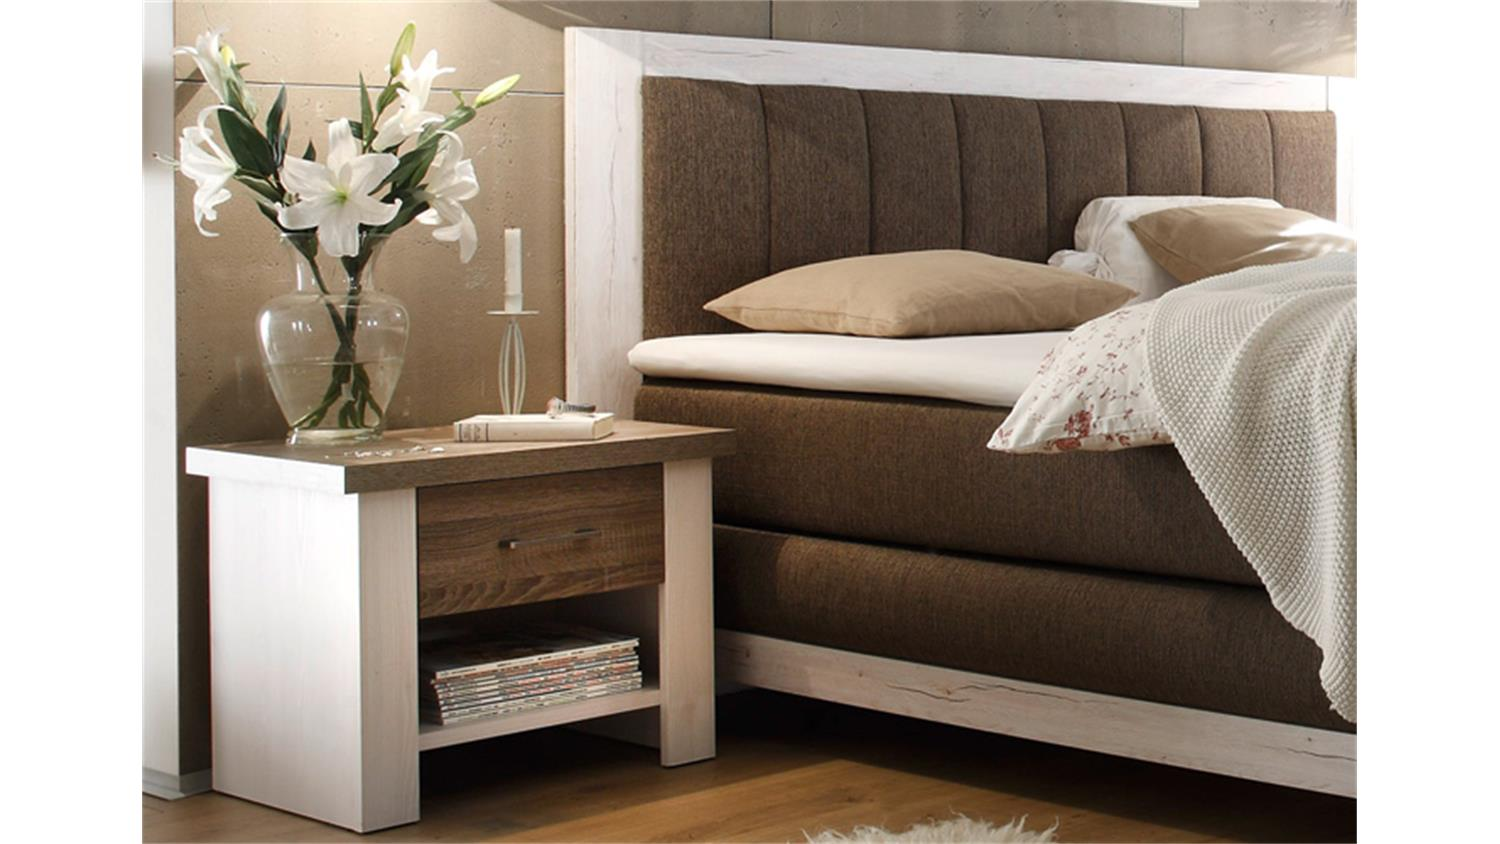 schlafzimmer ausmalen schlafen inspiration f r die gestaltung der besten r ume. Black Bedroom Furniture Sets. Home Design Ideas